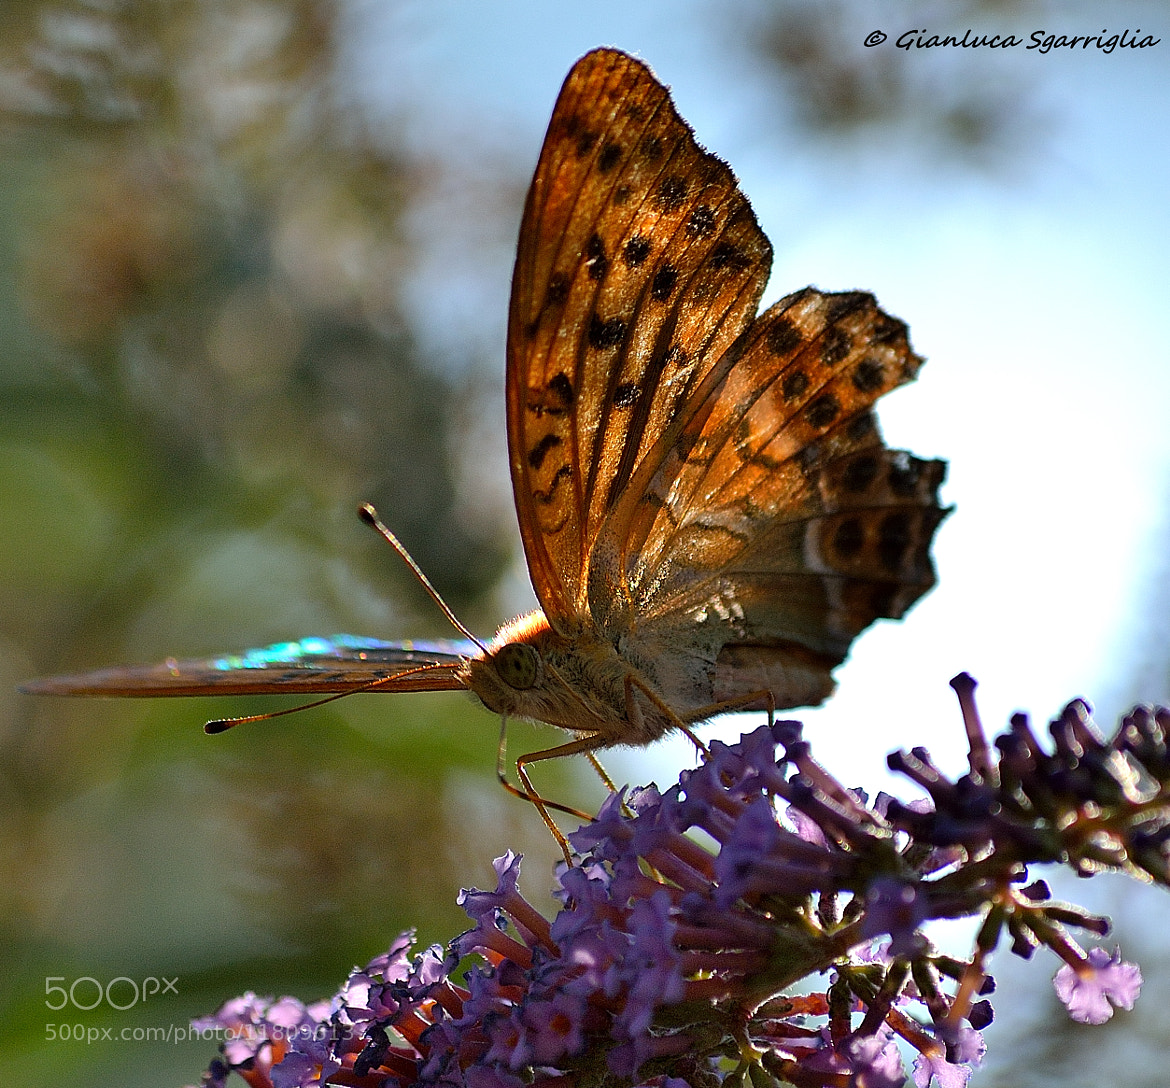 Photograph Butterfly  by Gianluca Sgarriglia on 500px